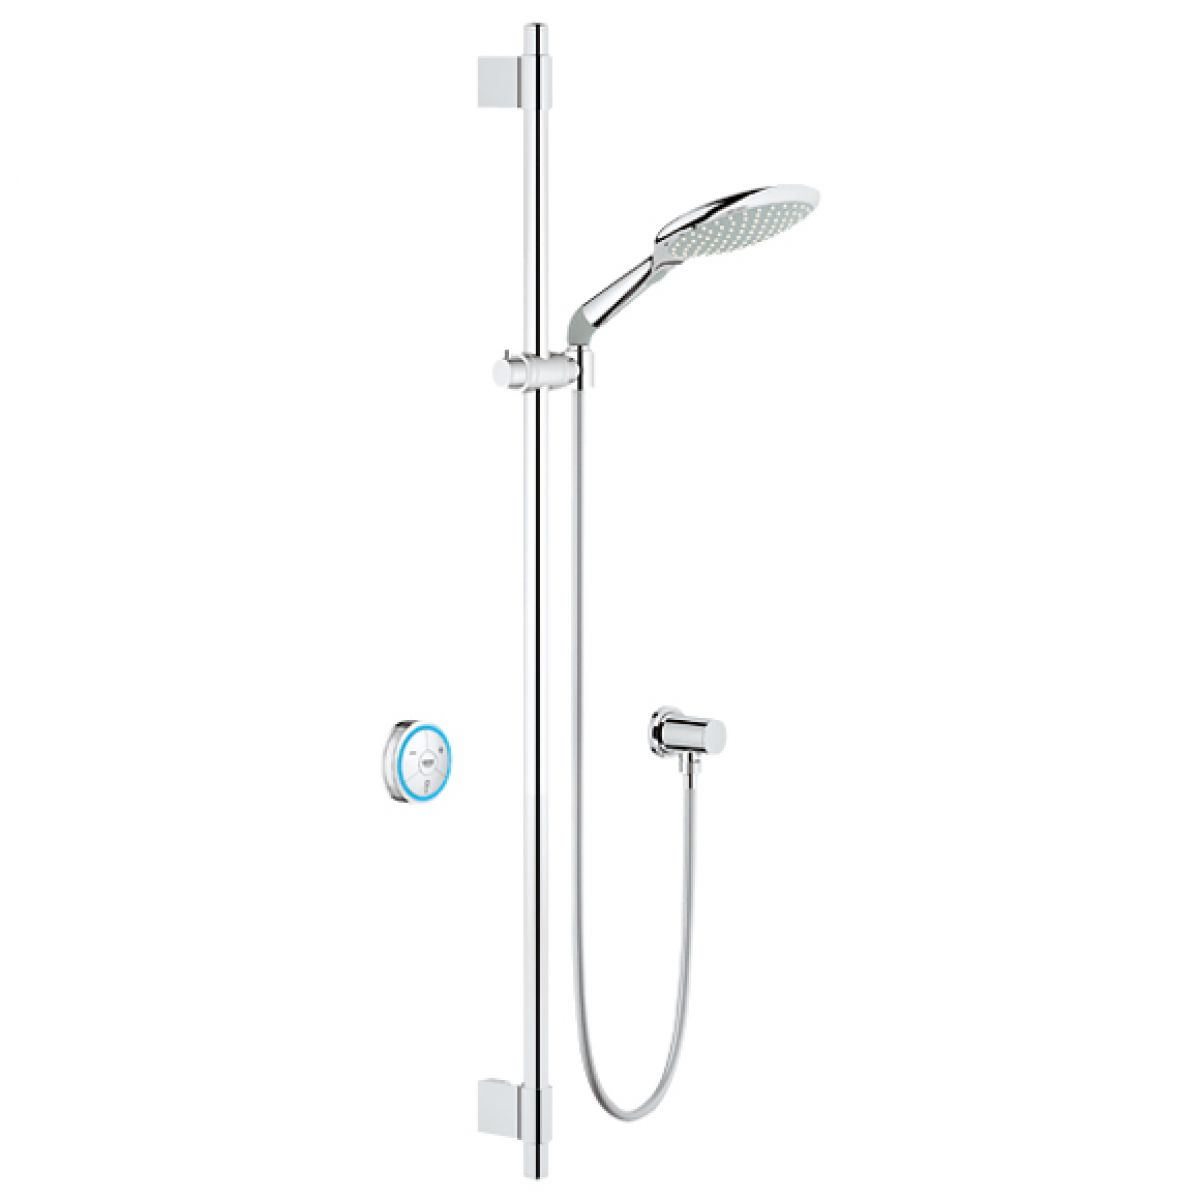 grohe f digital rainshower solo digital shower set biv. Black Bedroom Furniture Sets. Home Design Ideas